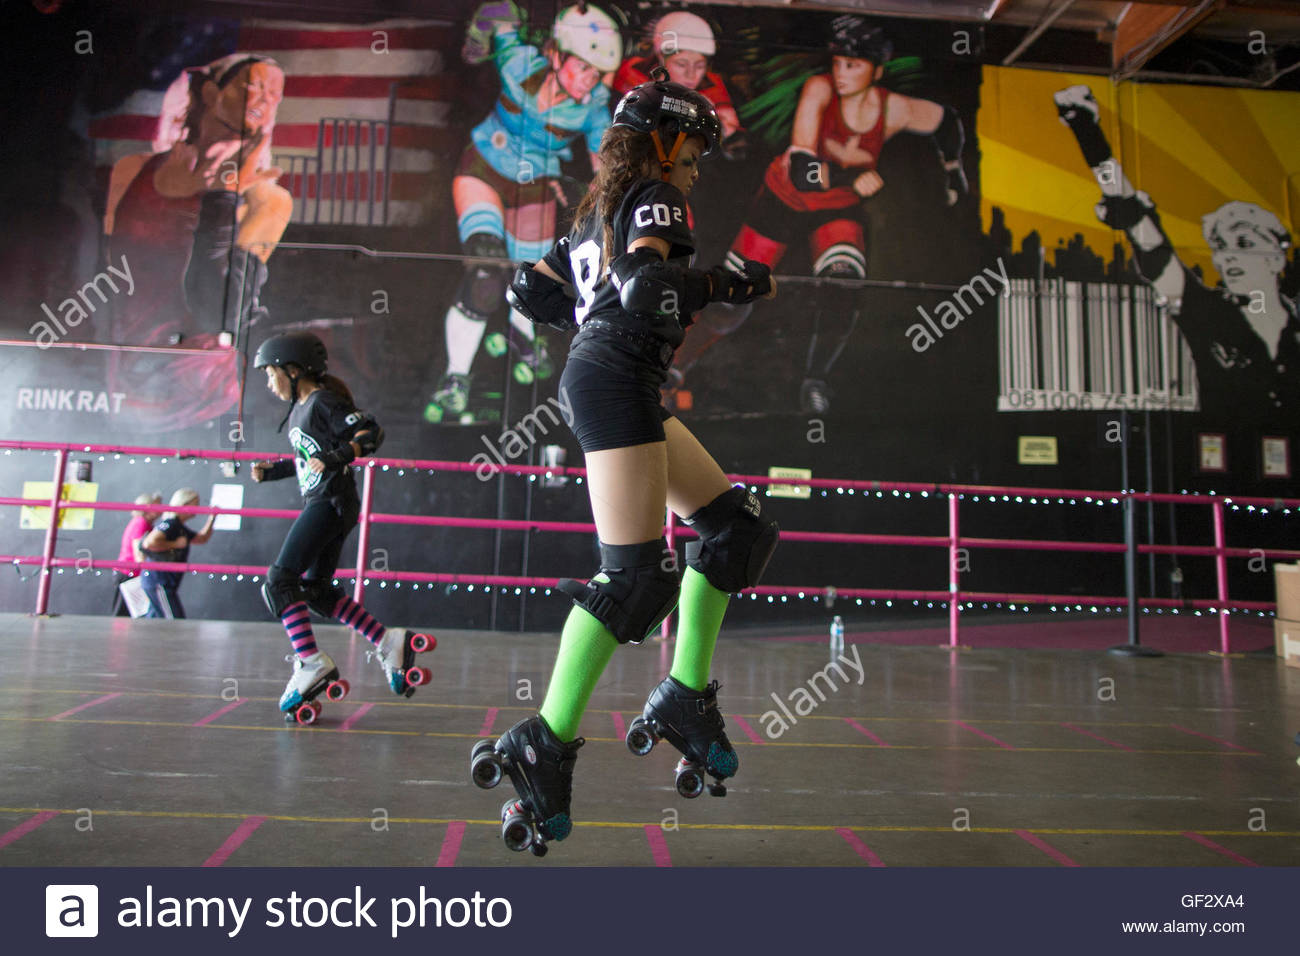 Roller skating babies - Sierra Olea 12 Of The Sugartown Sugar Babies From Oxnard Warms Up At The National Championship For Banked Track Roller Derby In Los Angeles California